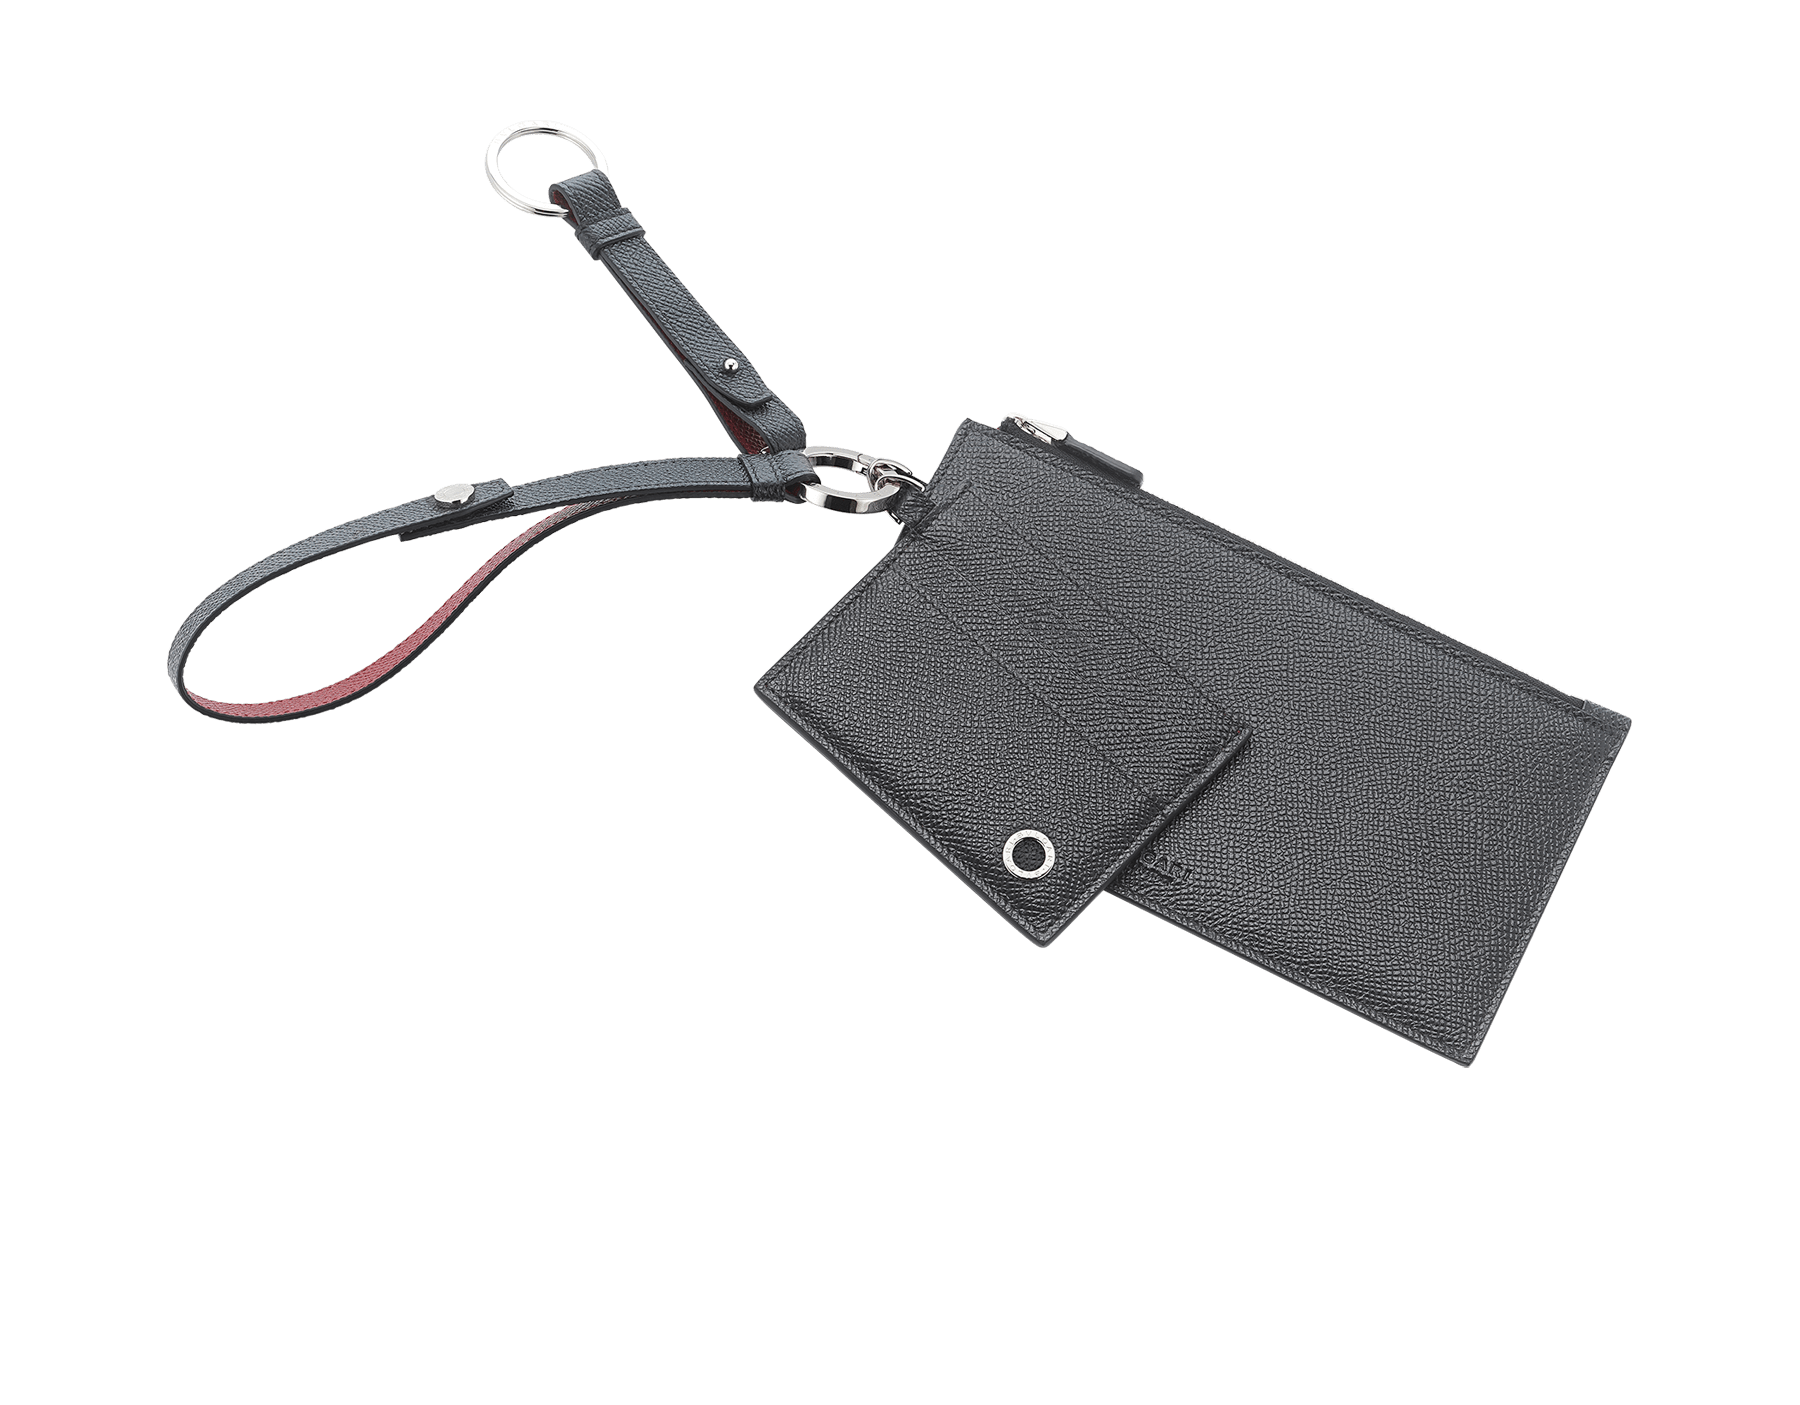 BVLGARI BVLGARI phone and credit card holder in black and ruby red calf leather. Brass palladium plated and black calf leather keyholder and black calf leather strap. 289388 image 1